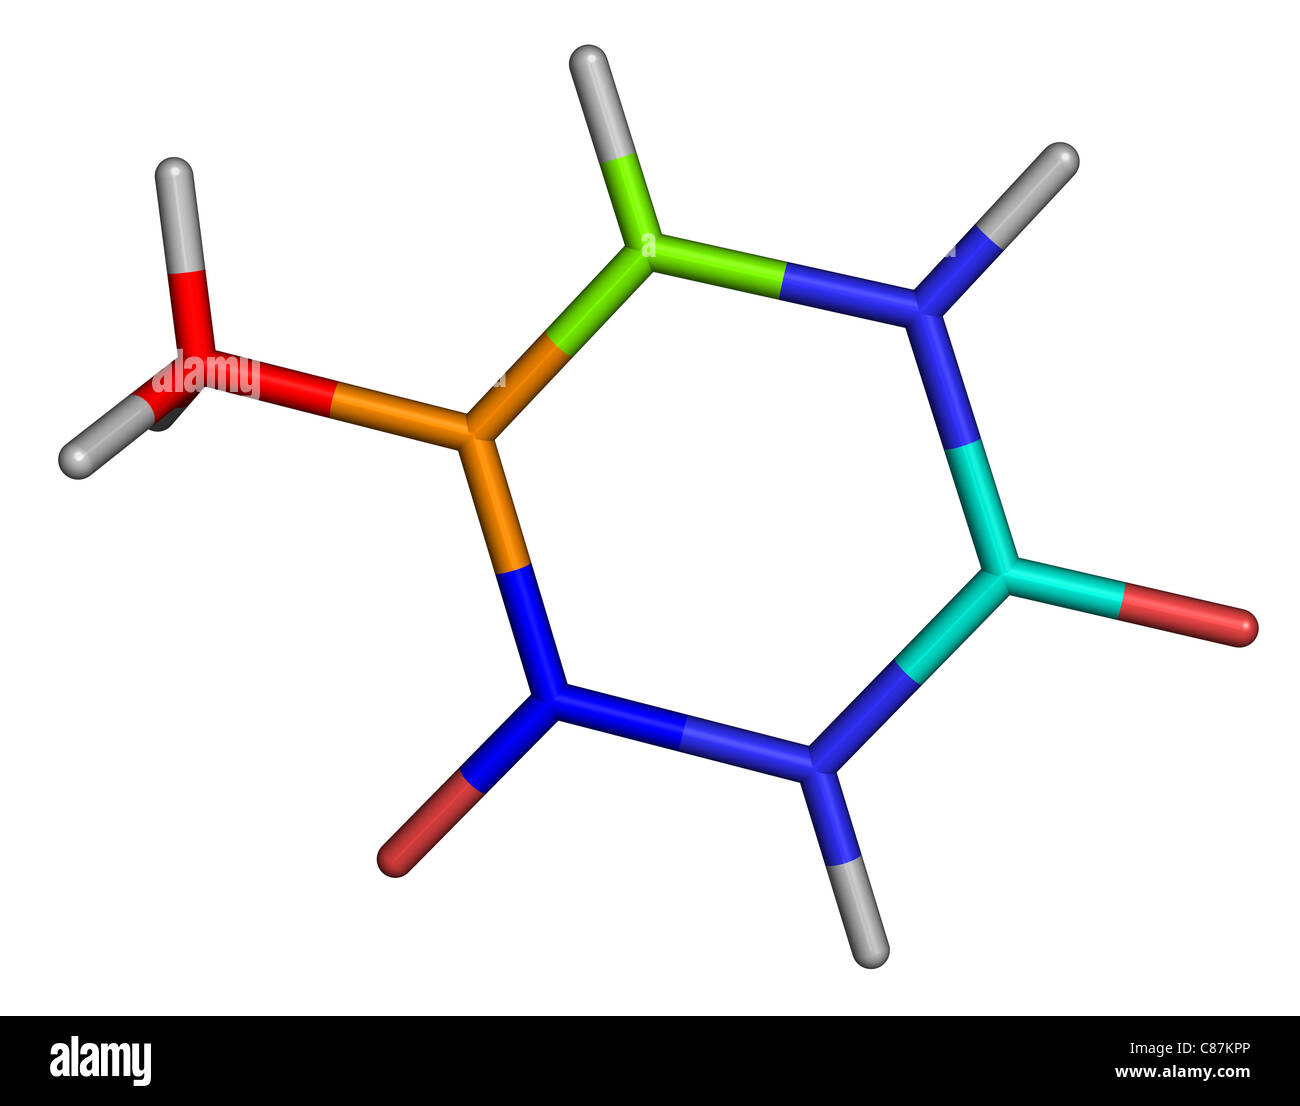 hight resolution of thymine is one of the four nucleobases in the nucleic acid of dna